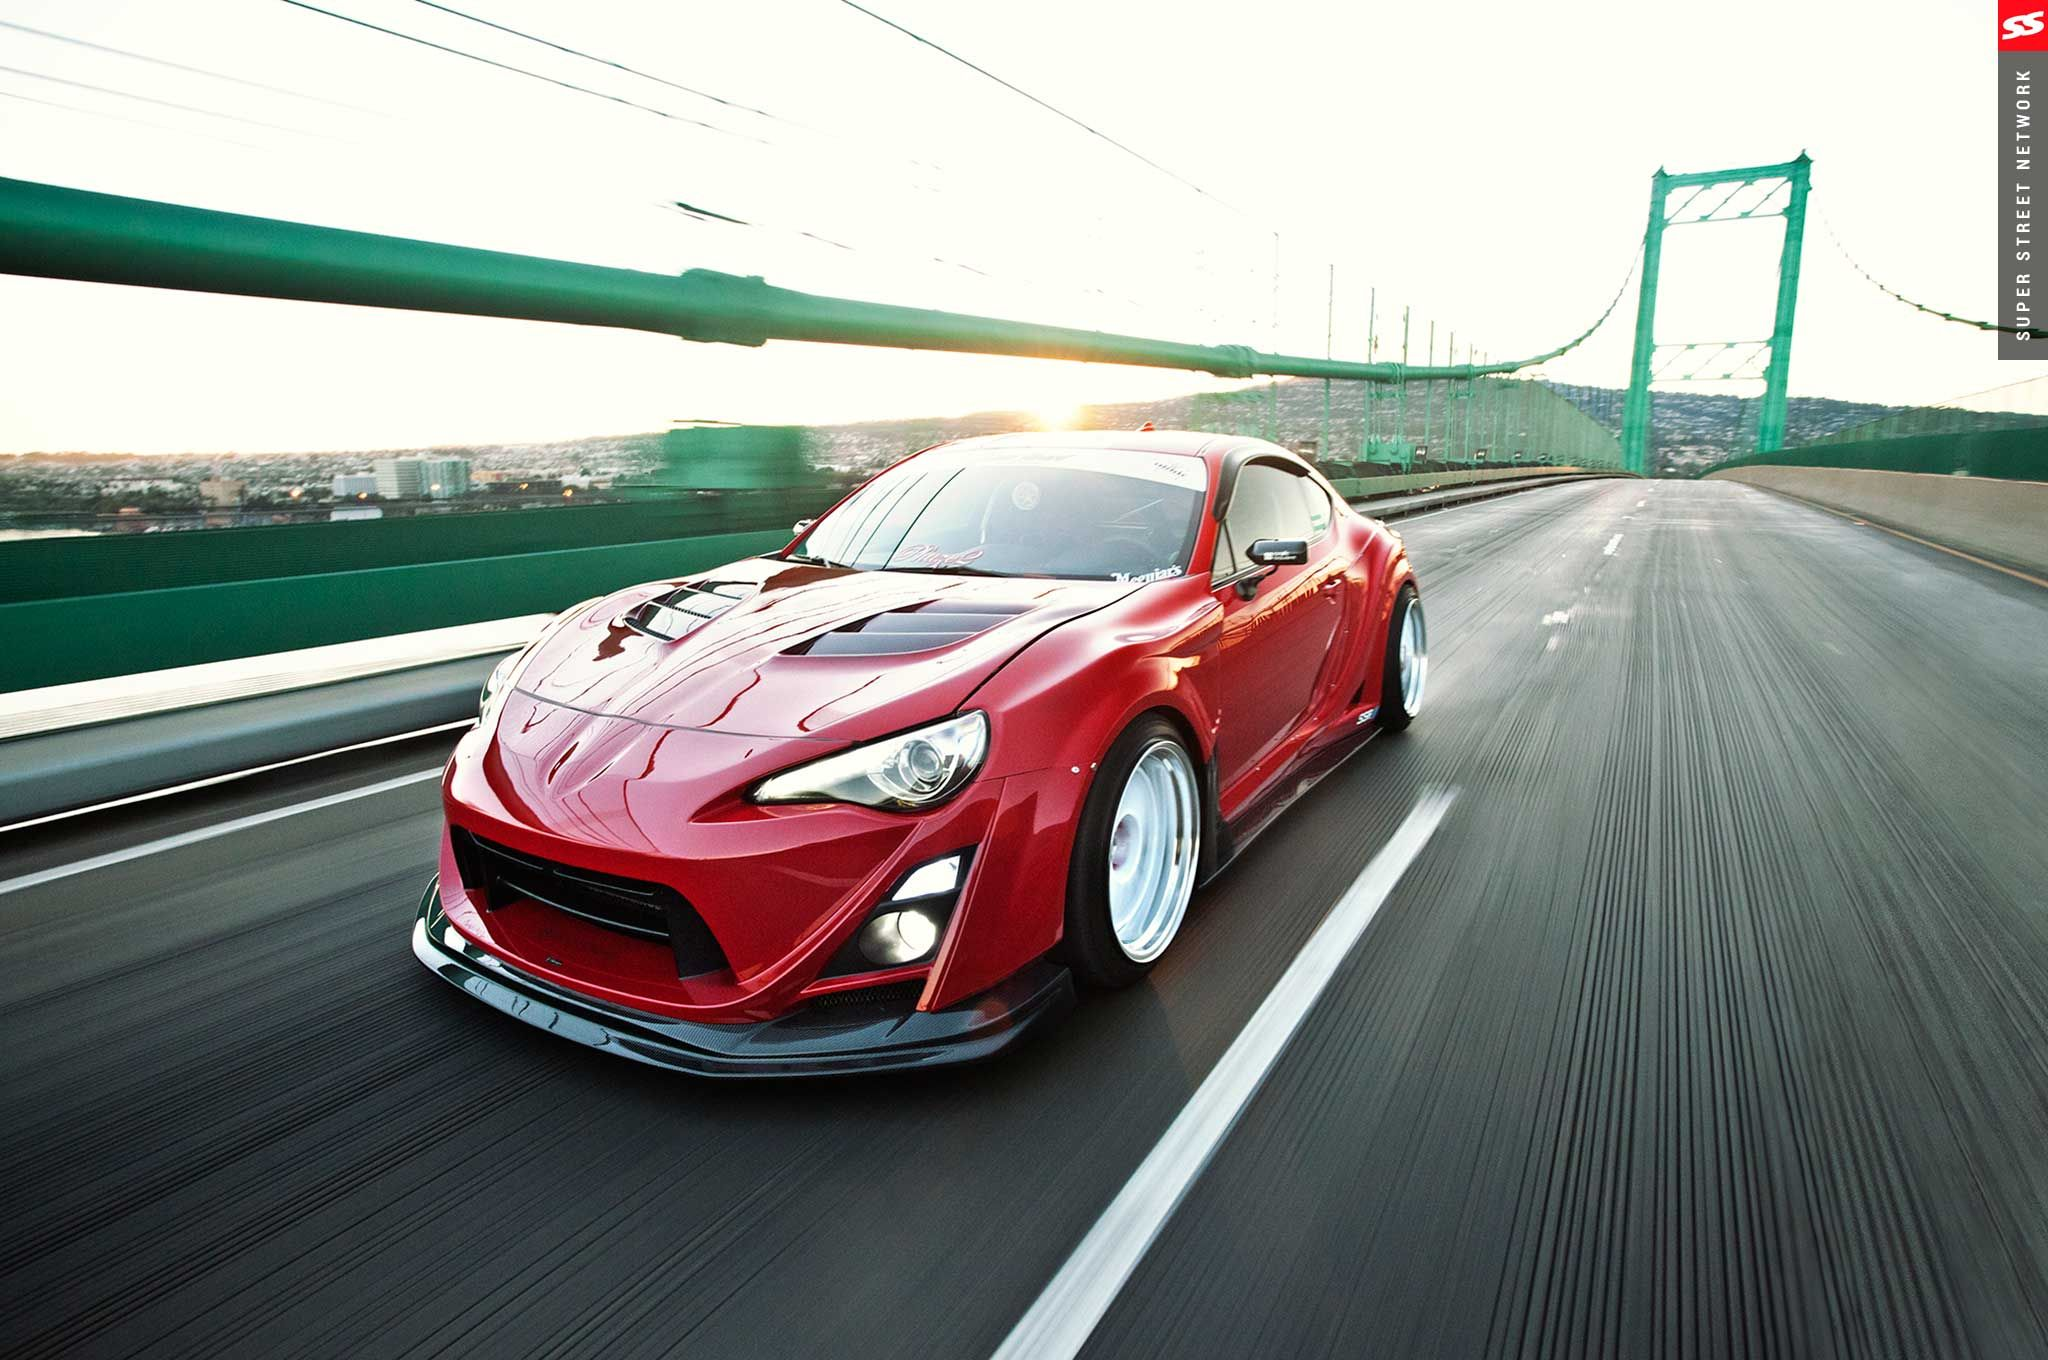 Canibeatnoel's Scion FRS Varis Widebody